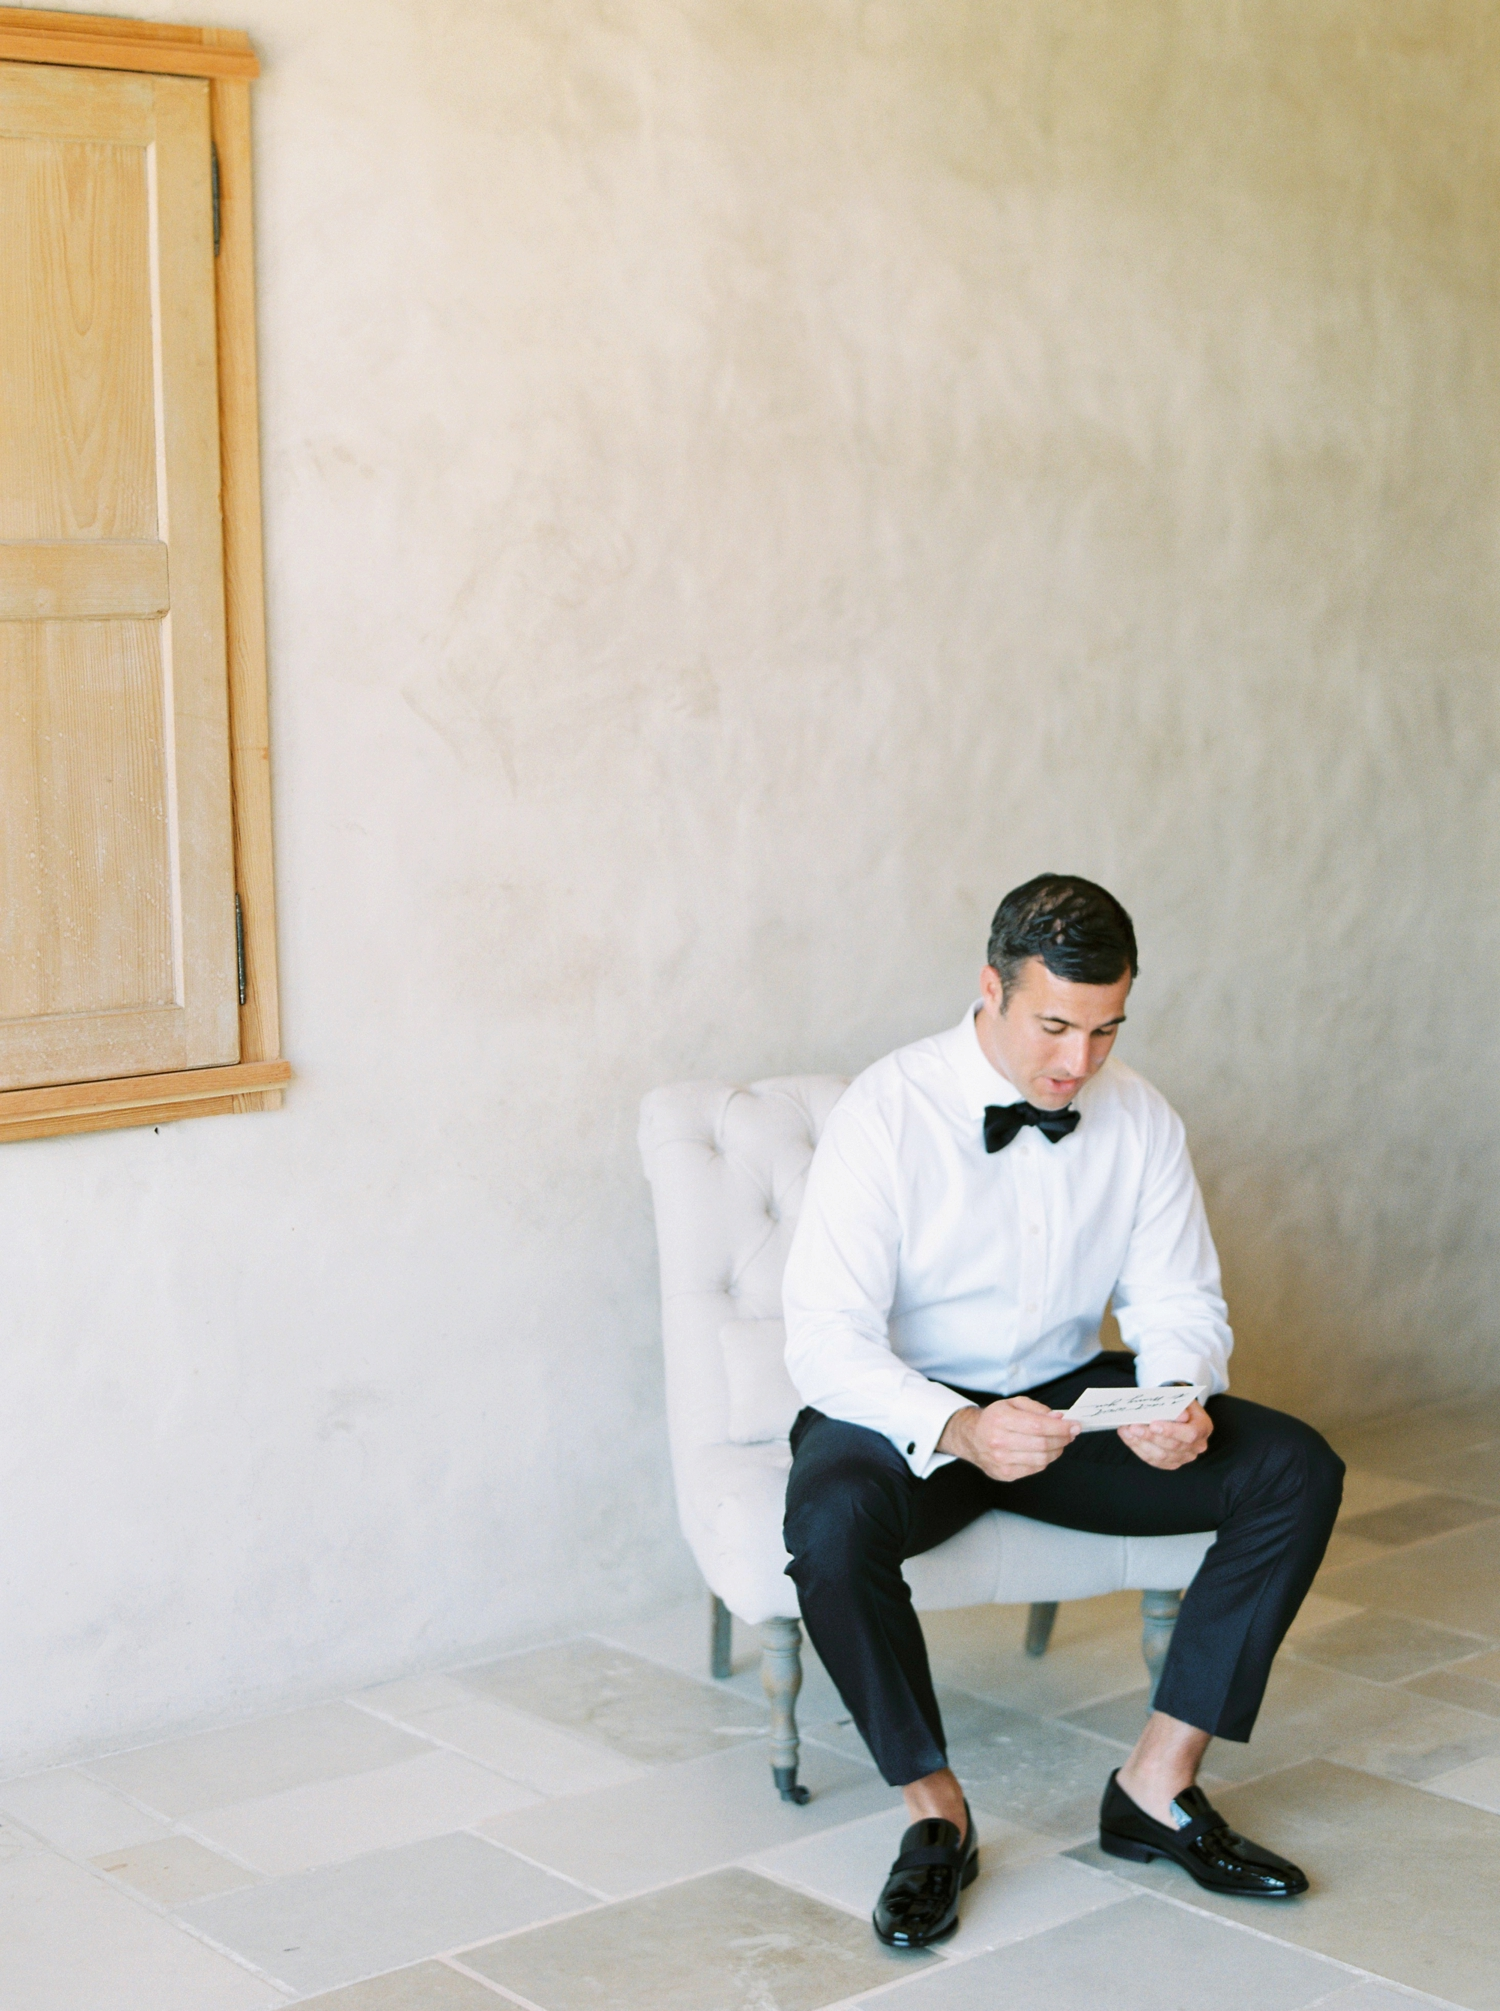 Sunstone Winery and Villa | California Wedding Photographers | Santa Barbara Wedding Photography | Santa Ynez Wedding | Justine Milton Photographer | Fine Art Film | Groom Getting Ready